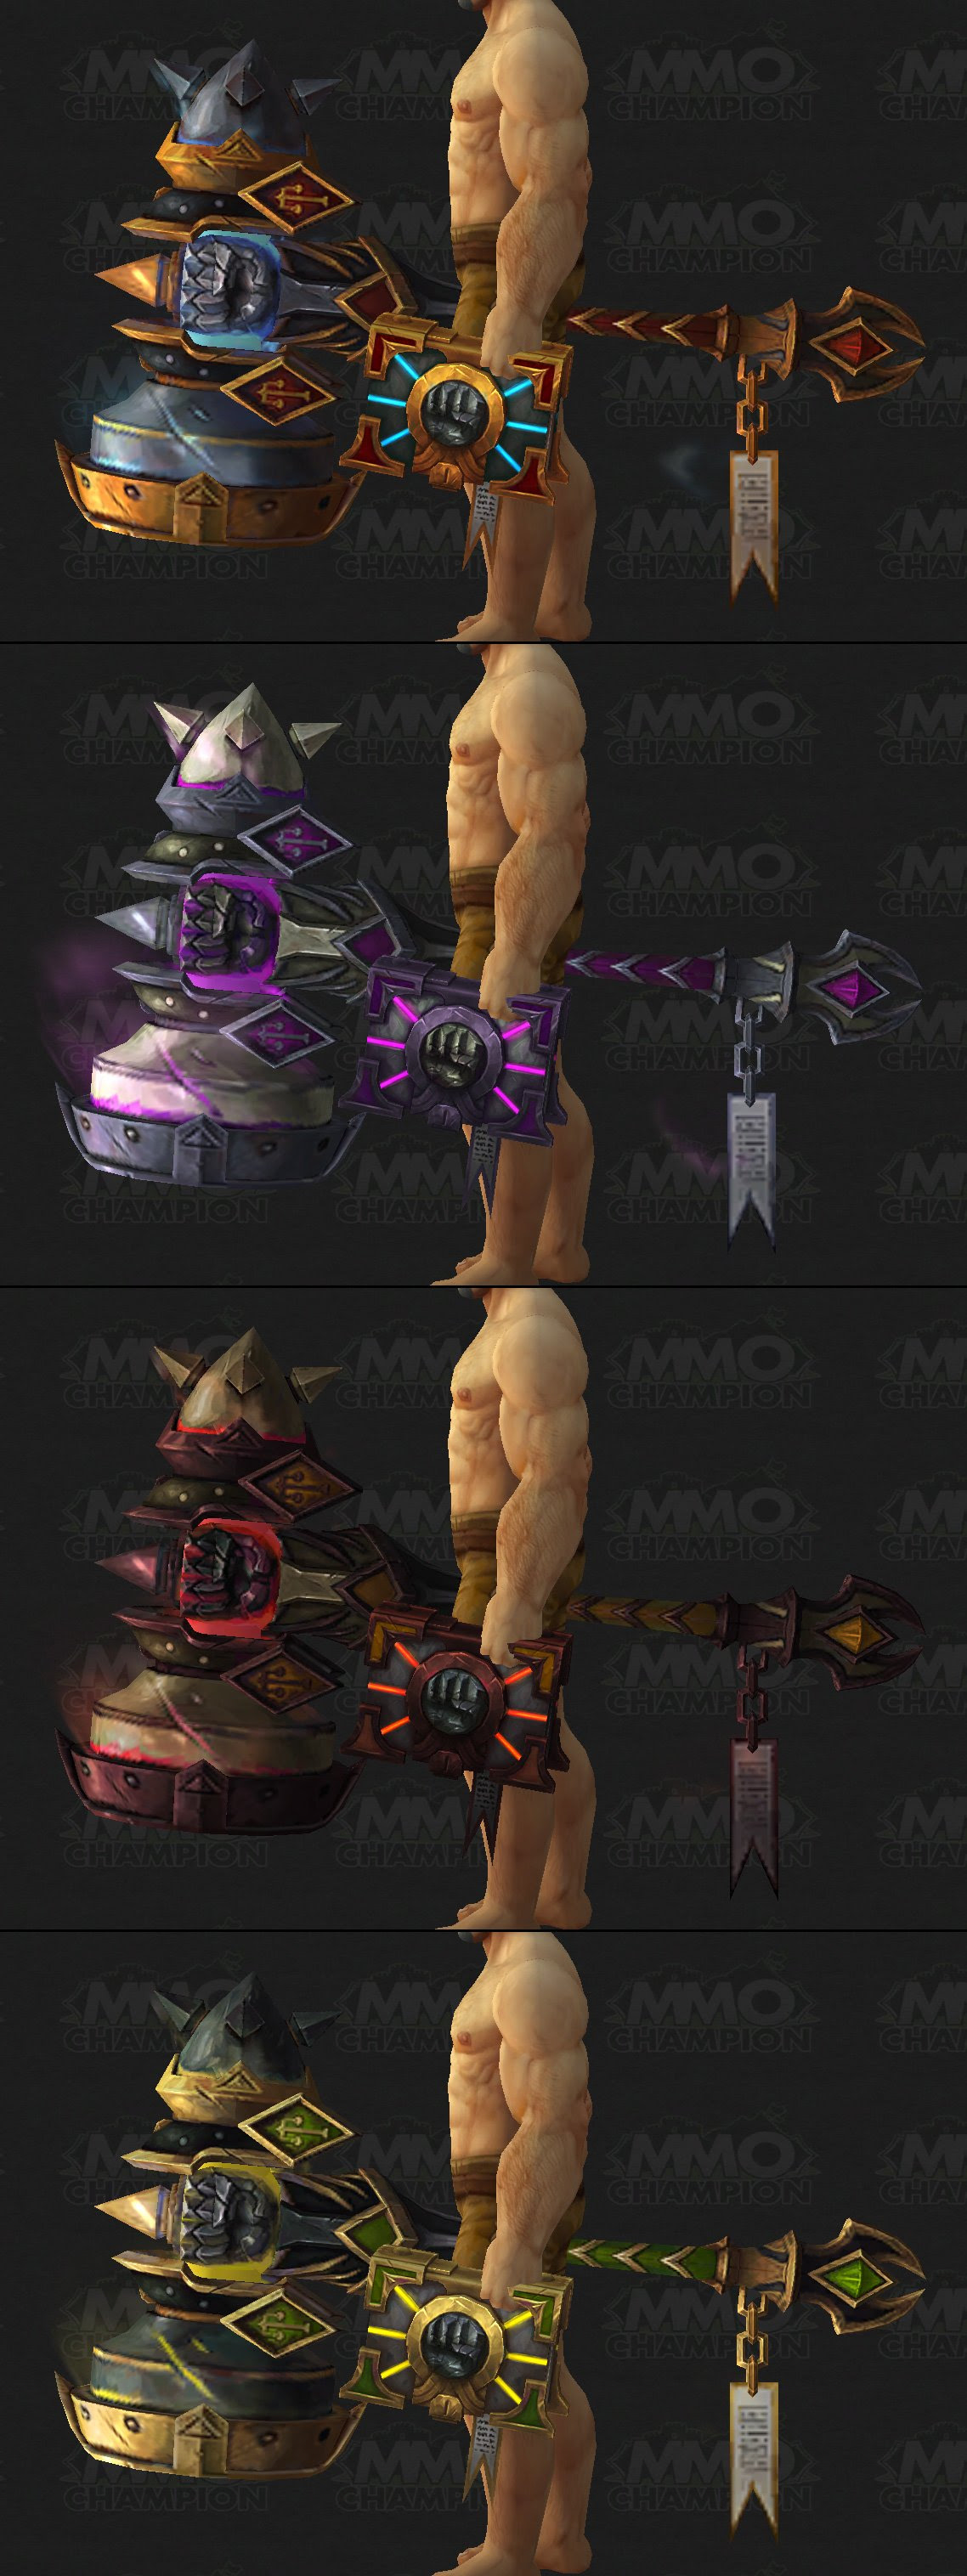 Holy Paladin Artifact Weapon Preview, Tweets, Activision Blizzard and MLG, Fan Art - MMO-Champion